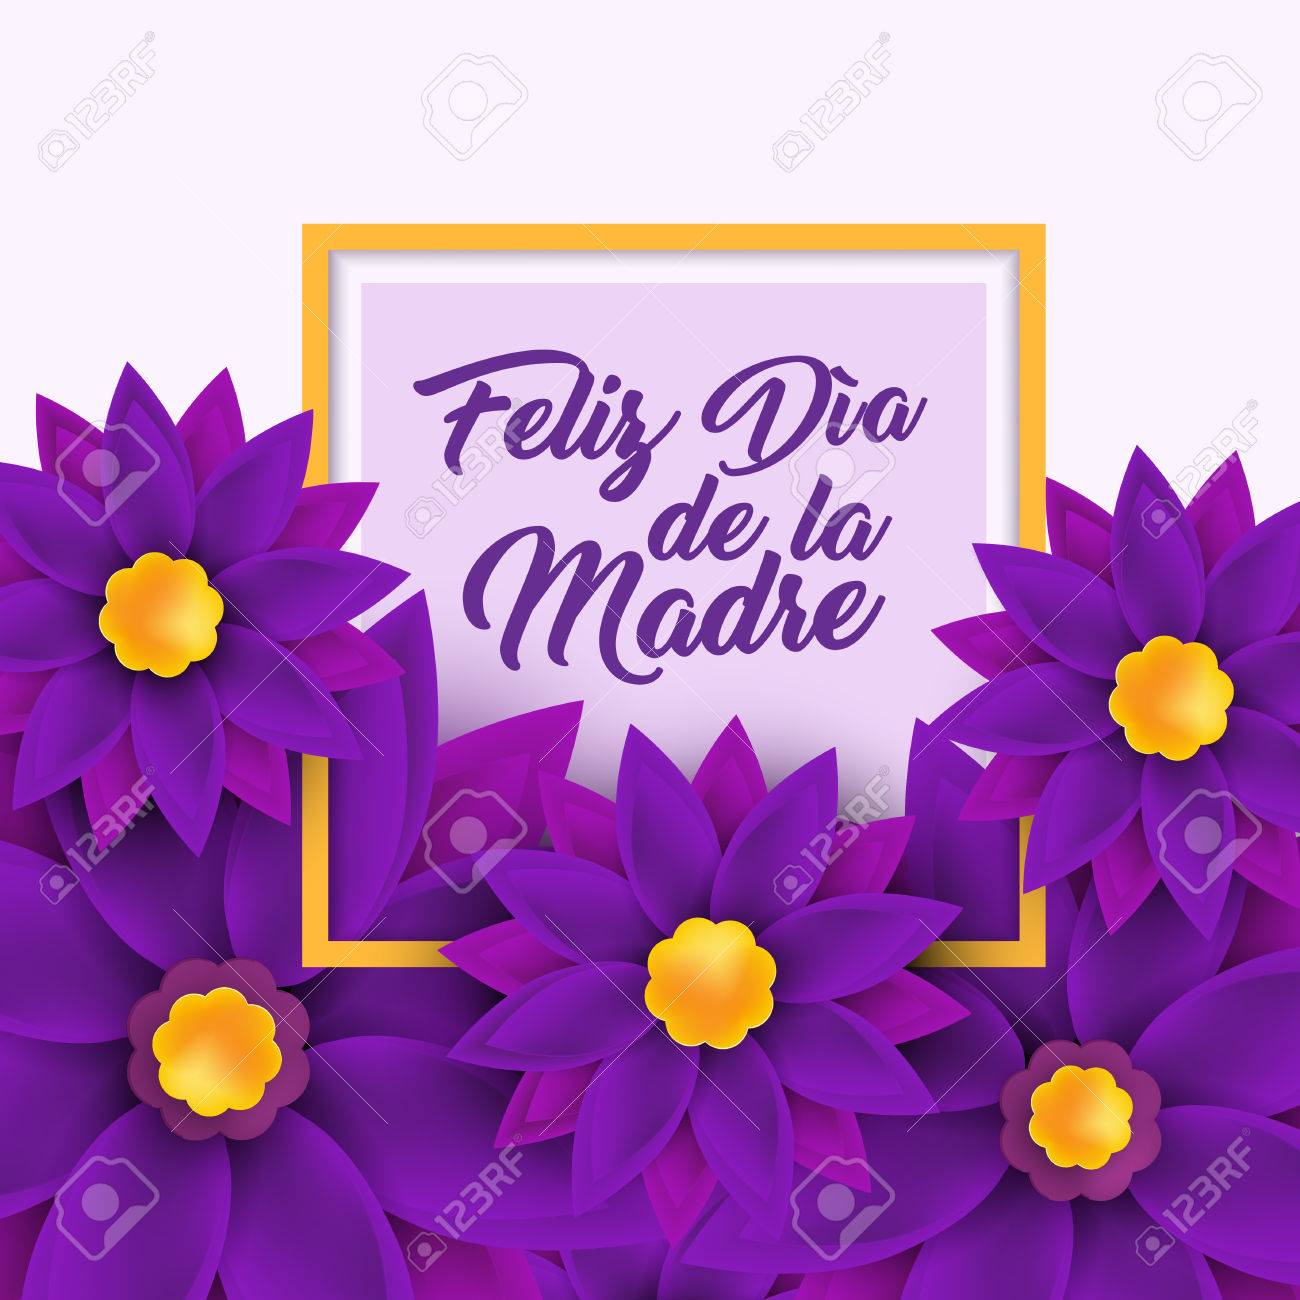 Feliz Dia De La Madre Happy Mother S Day In Spanish Royalty Free Cliparts Vectors And Stock Illustration Image 74581006